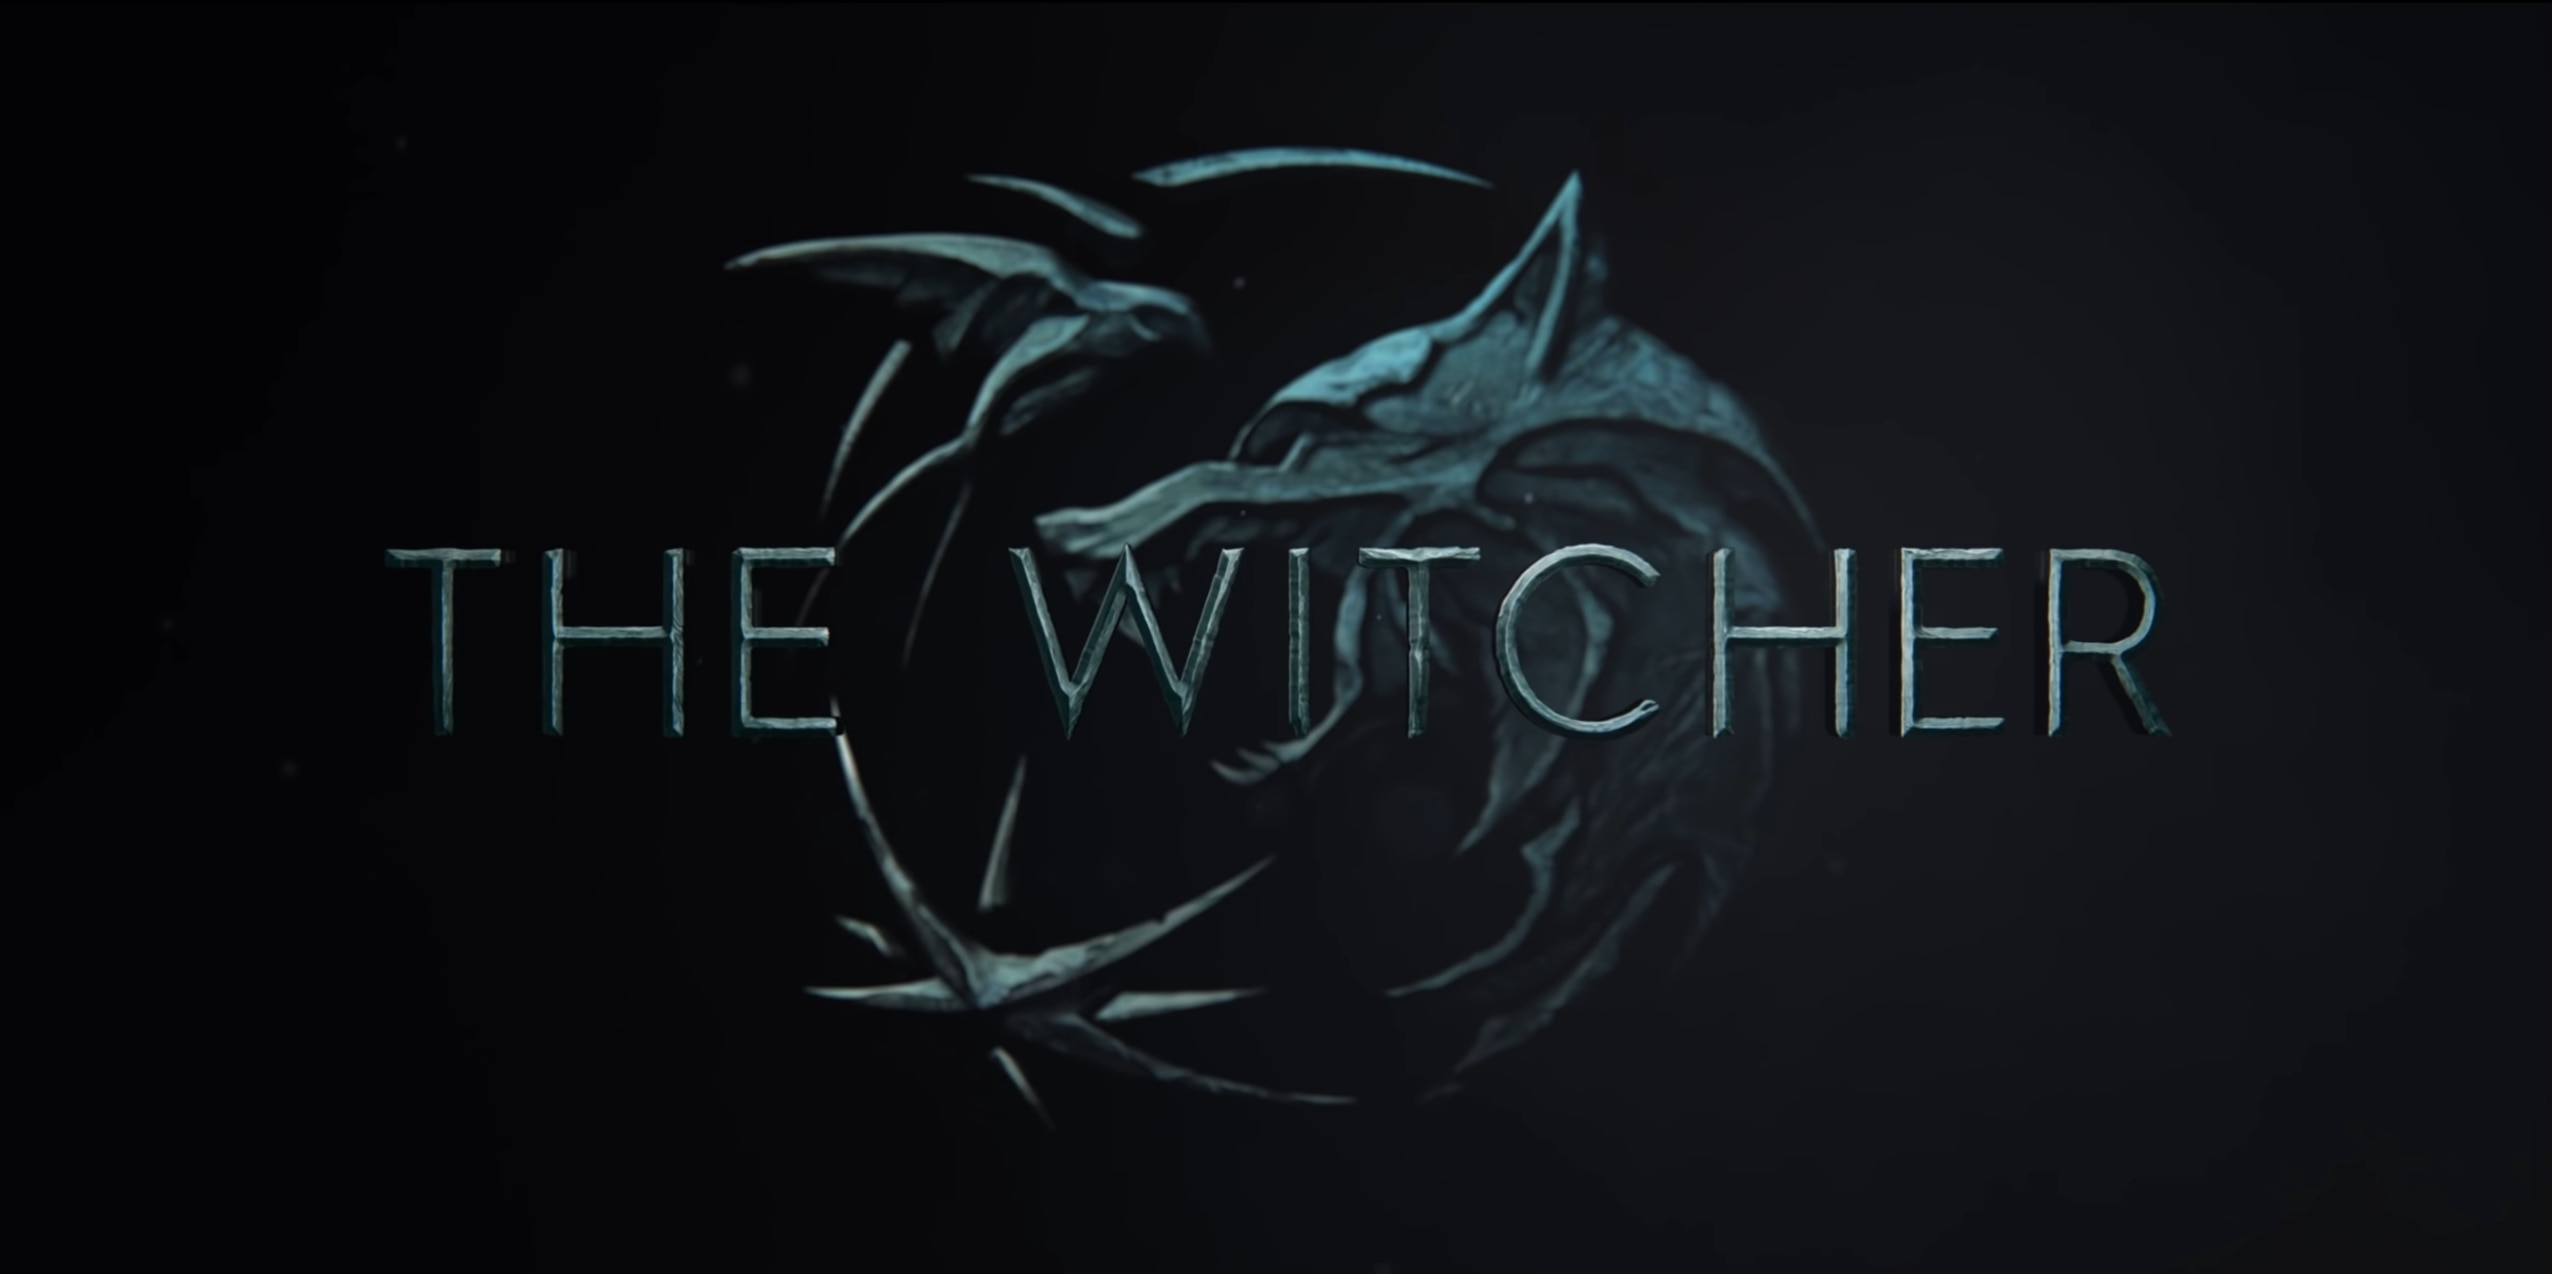 The Witcher release date on Netflix